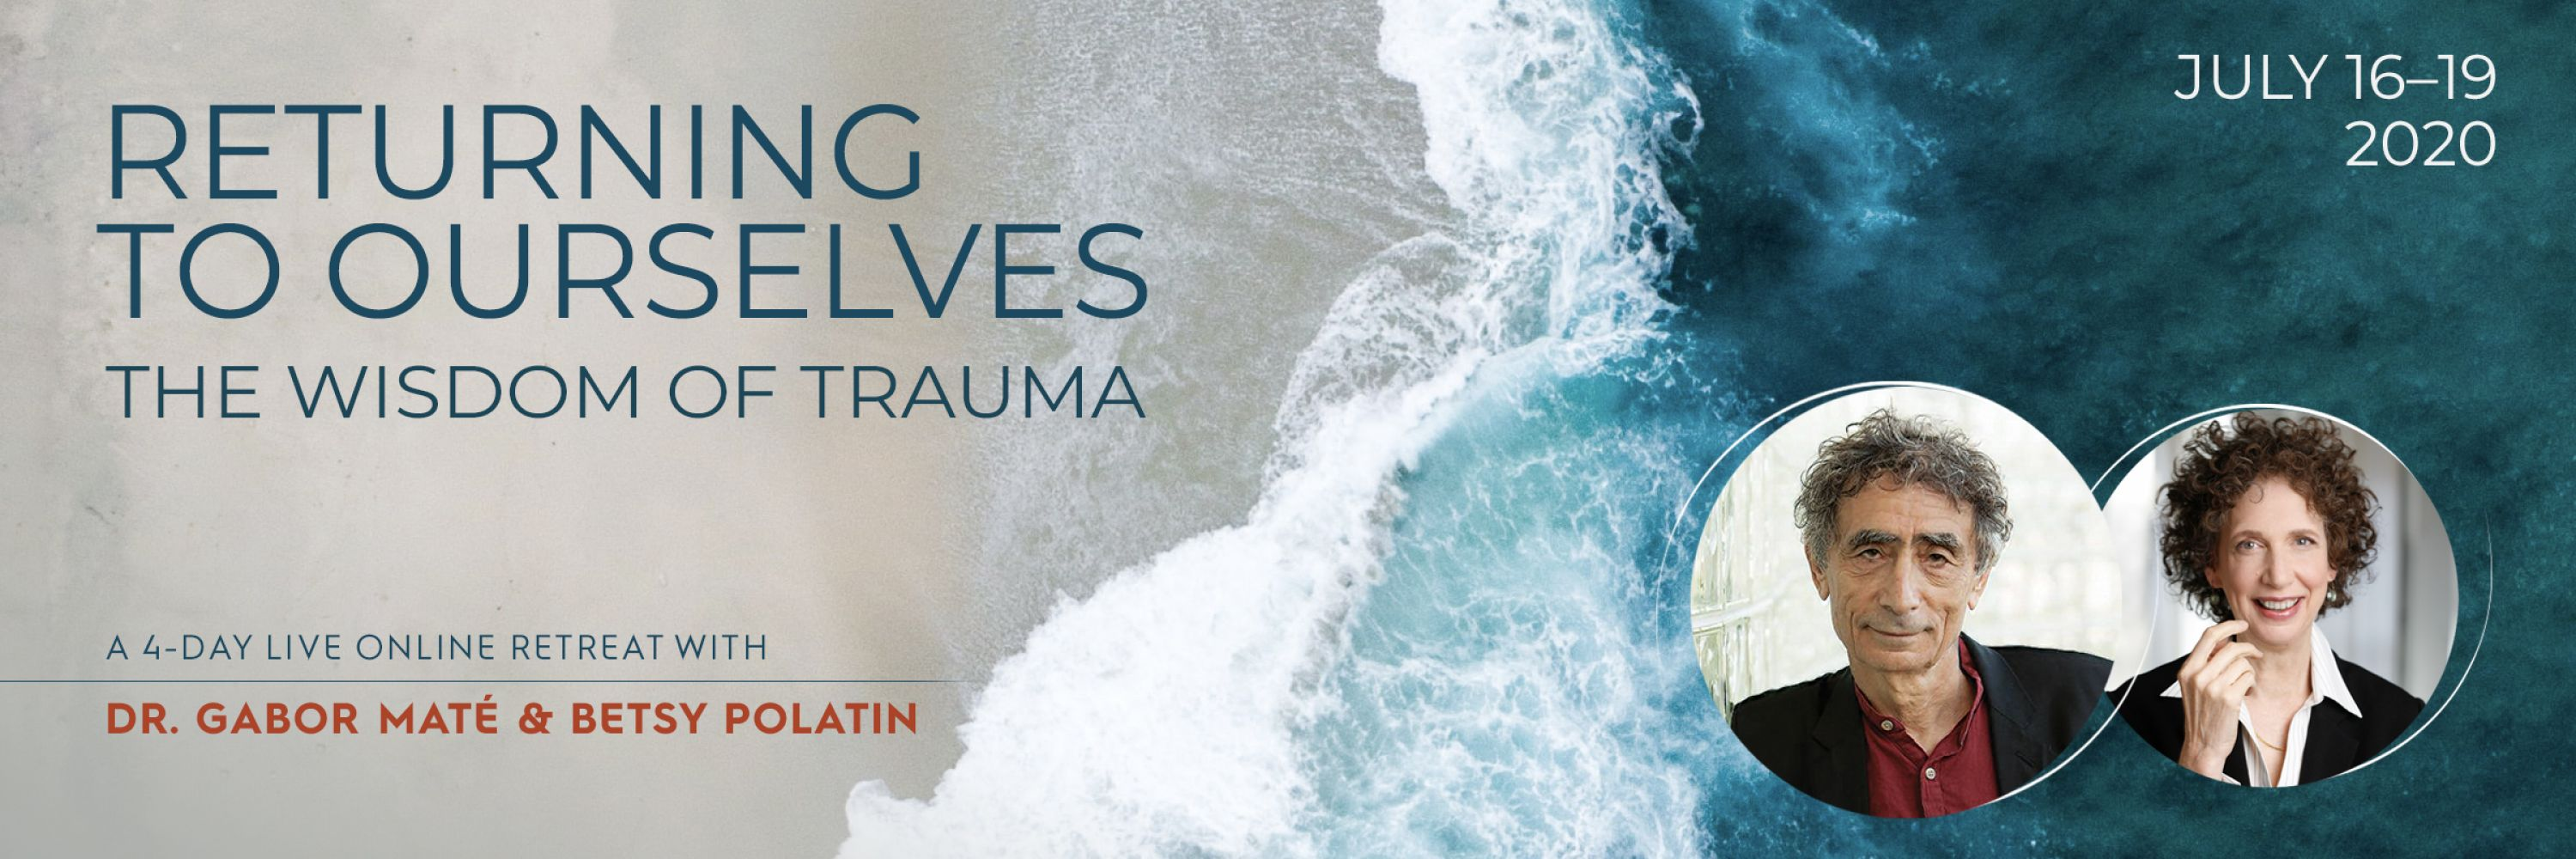 Returning to Ourselves: The Wisdom of Trauma<br />A 4-Day Online Retreat